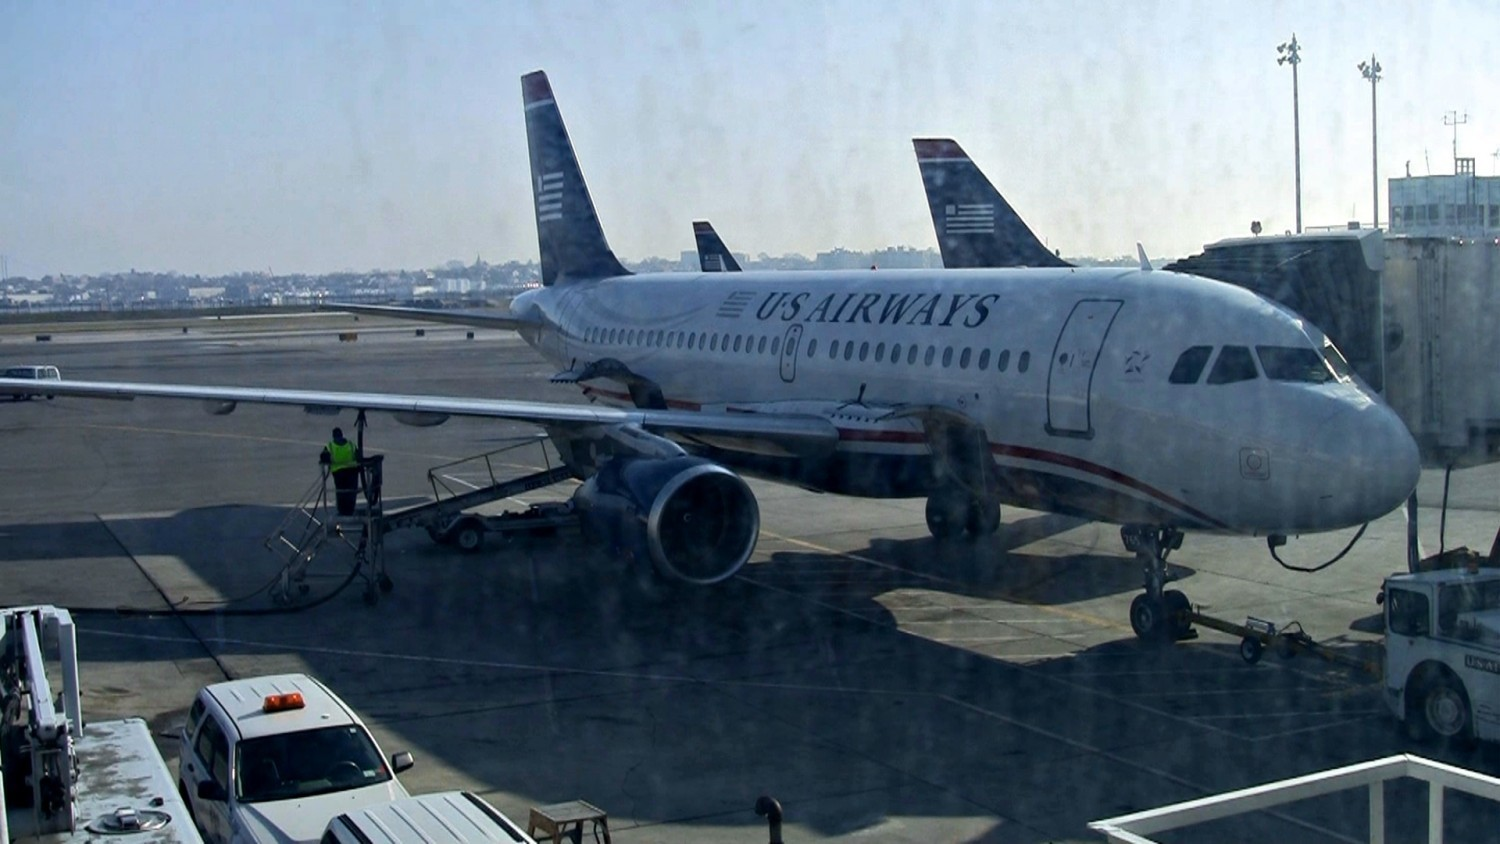 US Airways A319